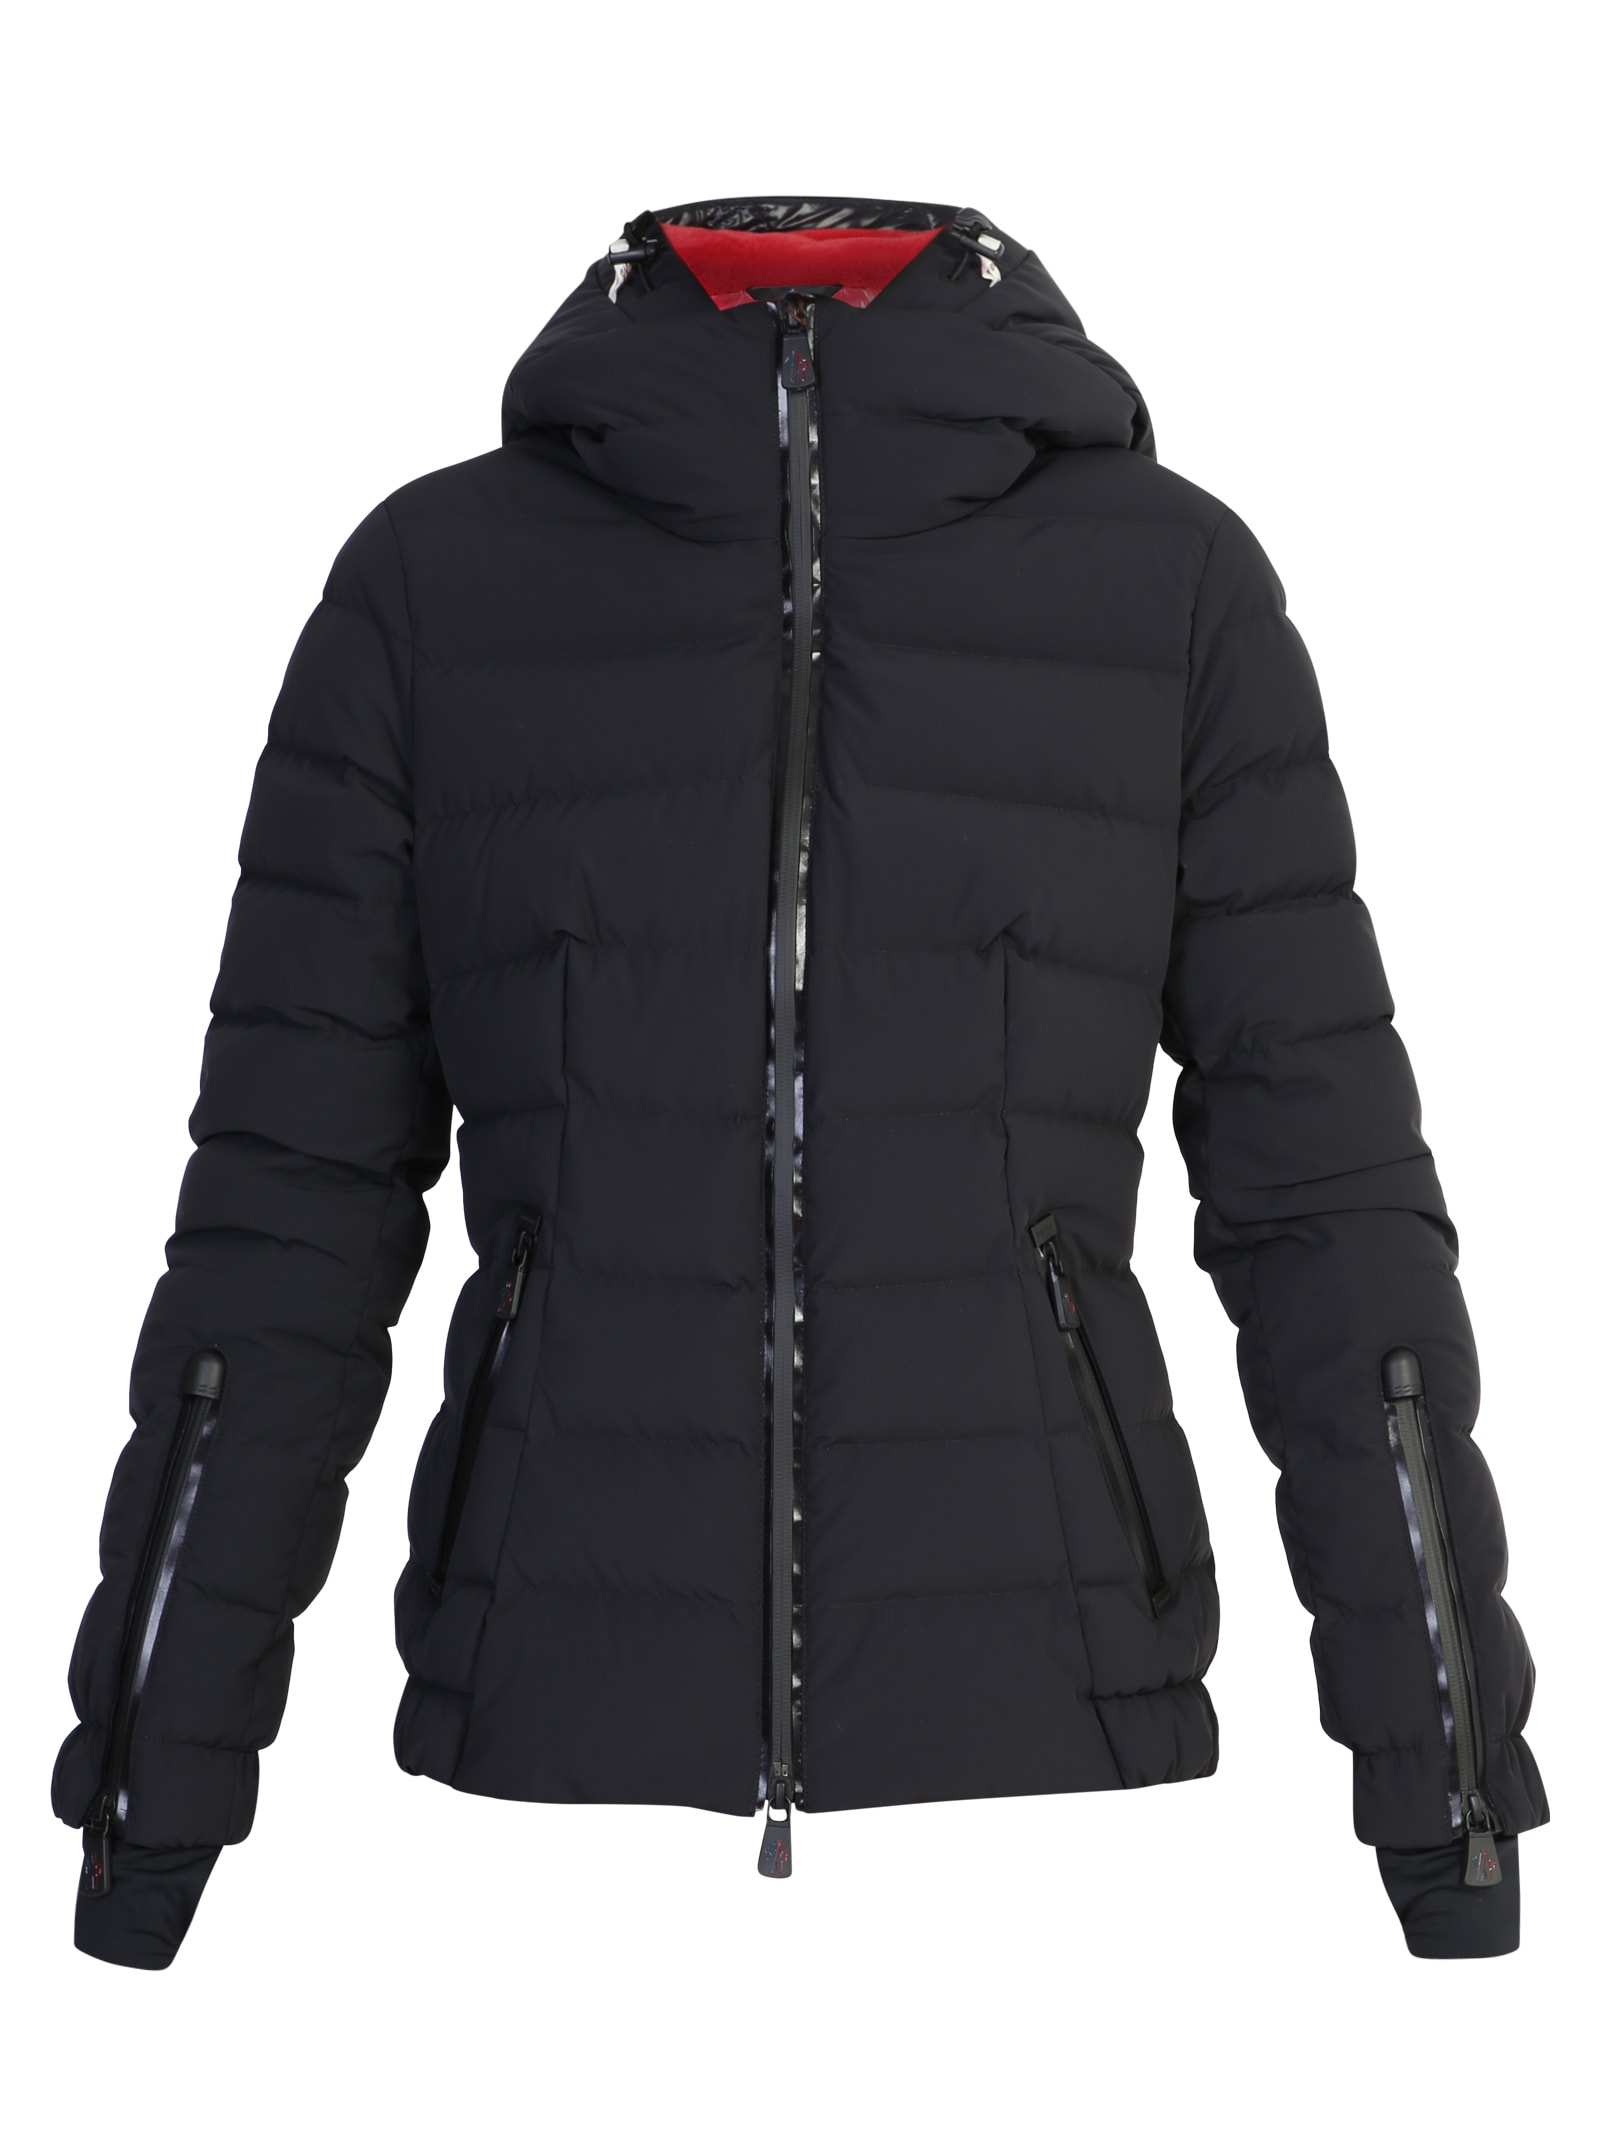 Moncler Grenoble Chena Padded Jacket